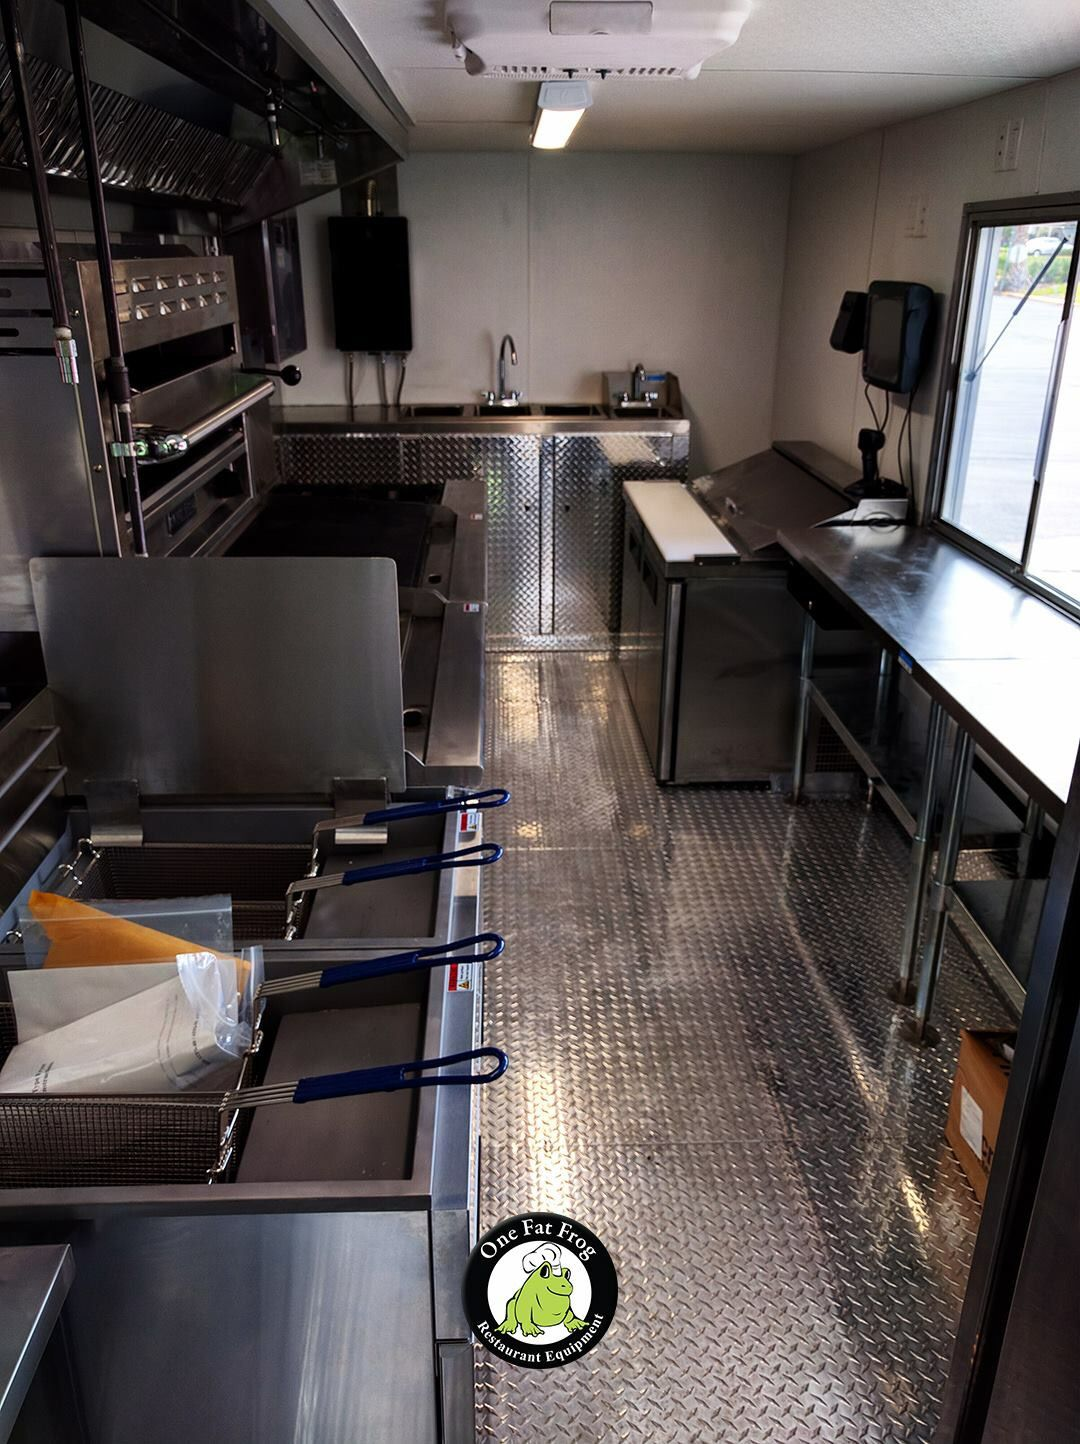 Pin On Cool Food Trucks Mobile Kitchens For Sale